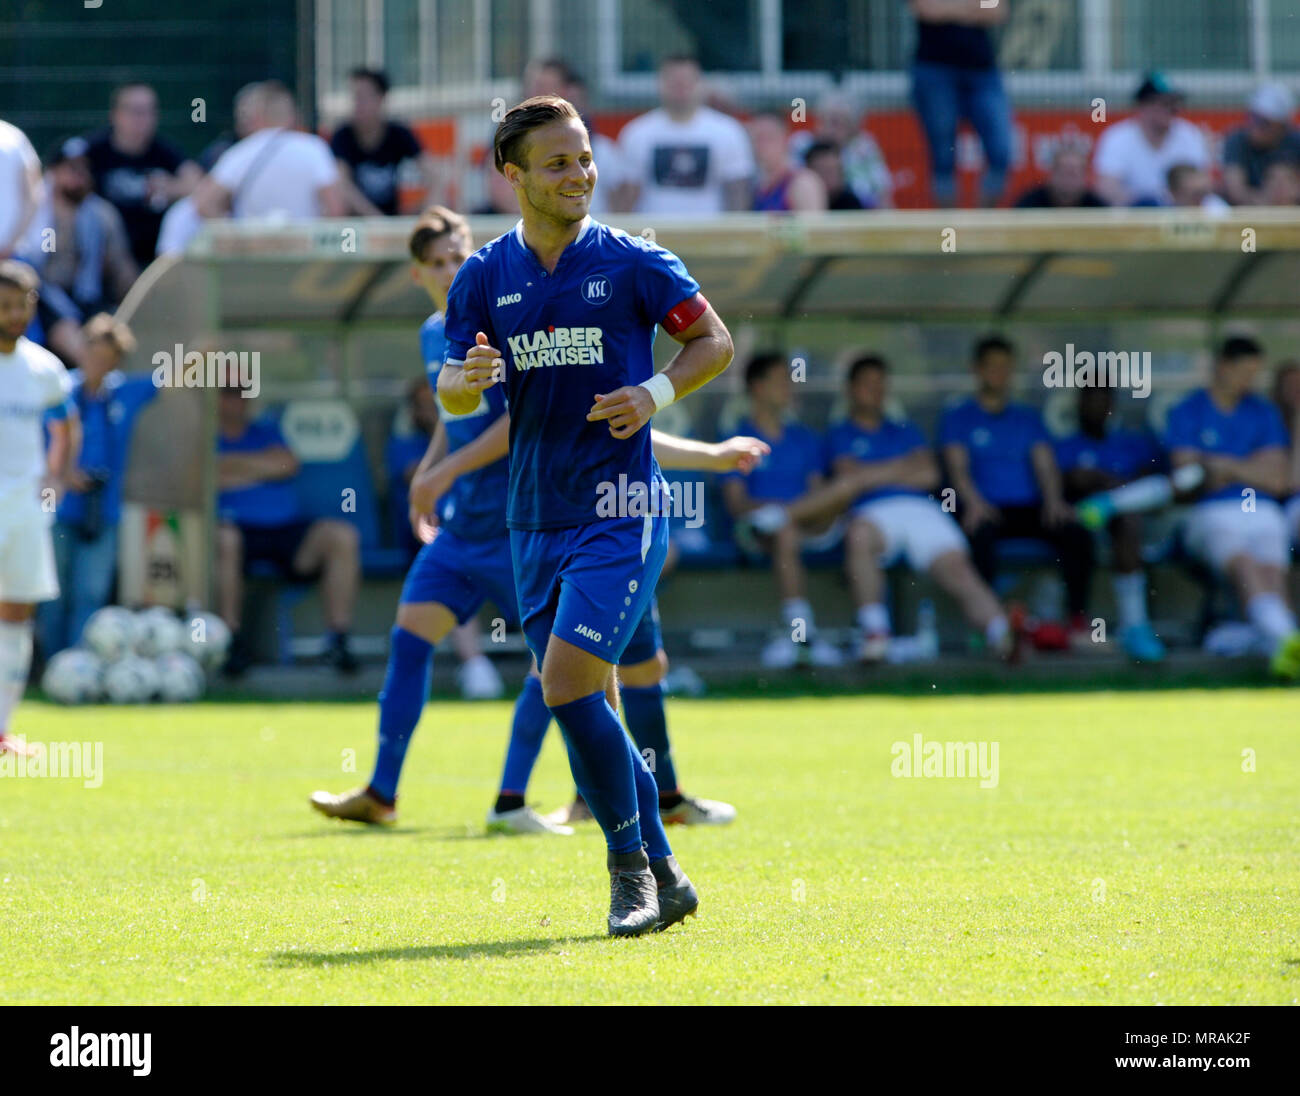 Karlsruhe, Deutschland. 26th May, 2018. Kai Kleinert (KSC). GES/Football/Oberliga: Karlsruher SC 2 - FV Ravensburg, 26.05.2018 - | usage worldwide Credit: dpa/Alamy Live News - Stock Image